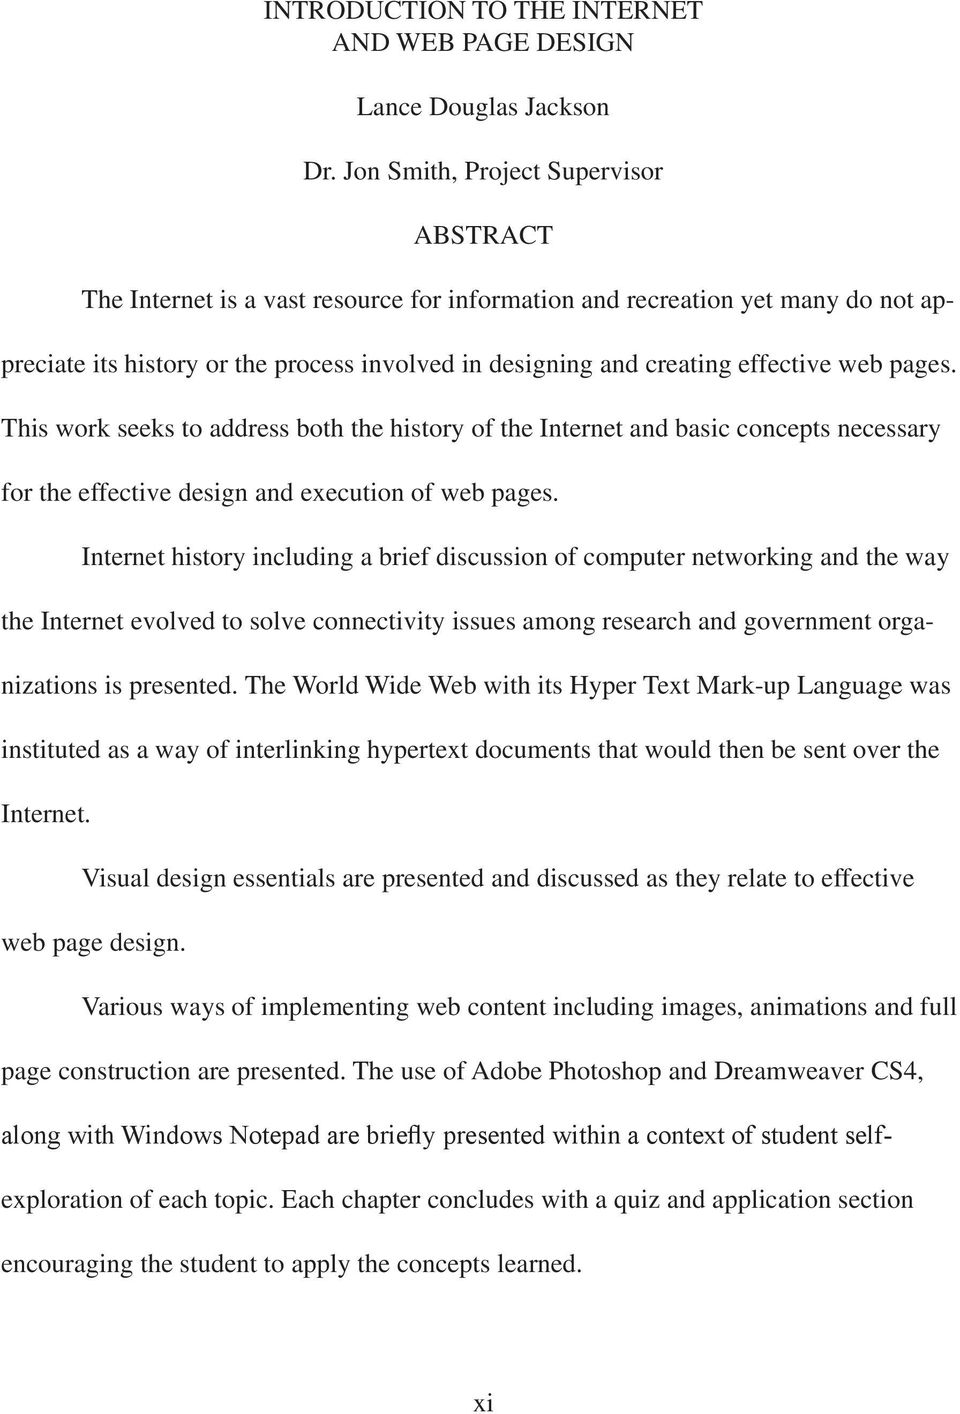 effective web pages. This work seeks to address both the history of the Internet and basic concepts necessary for the effective design and execution of web pages.